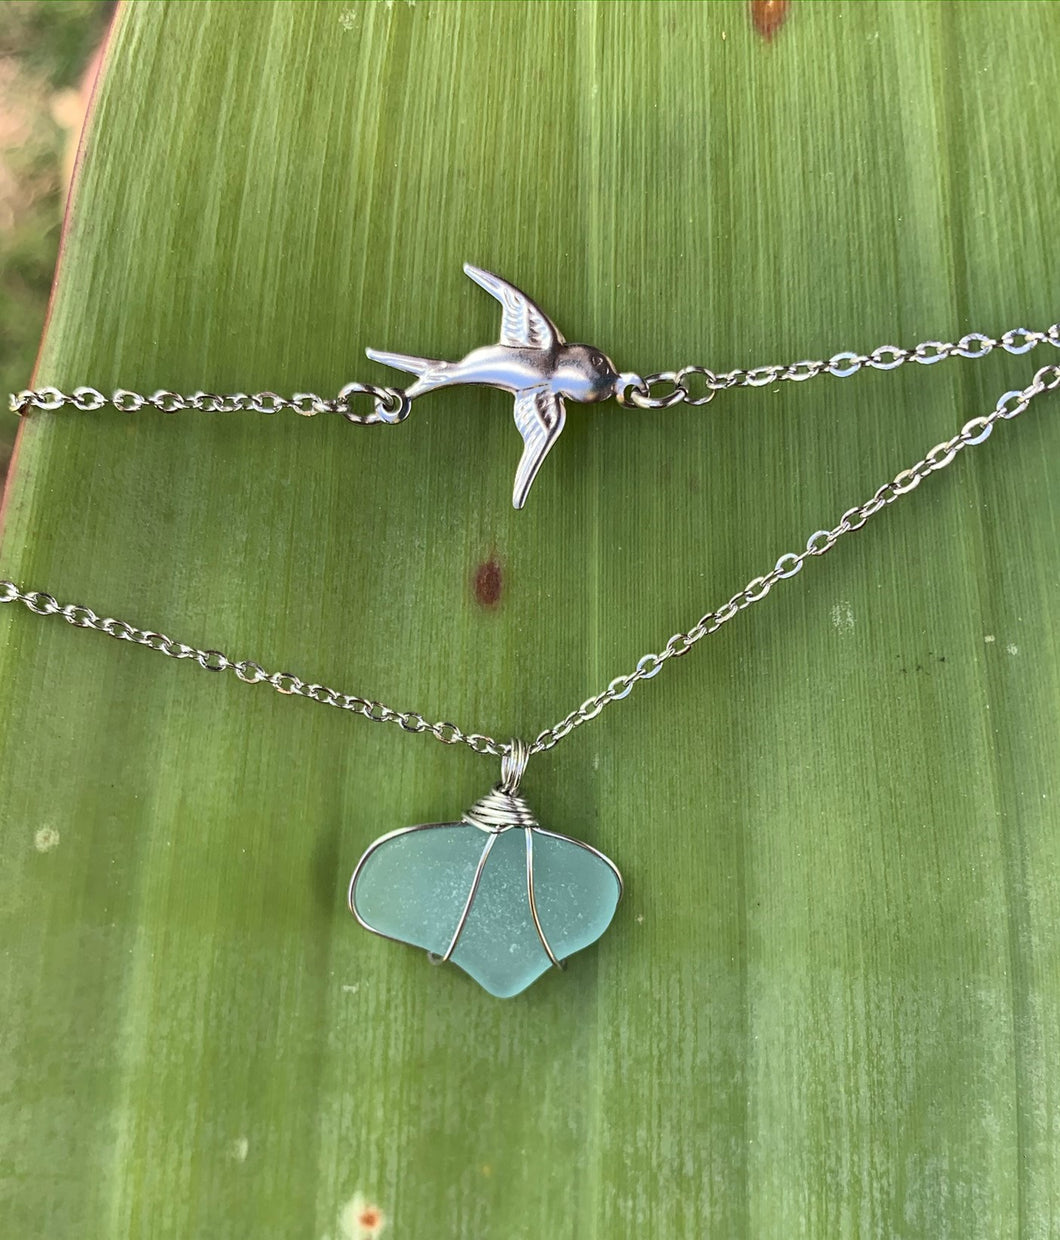 Seafoam Seaglass and Swallow Double Chain Necklace